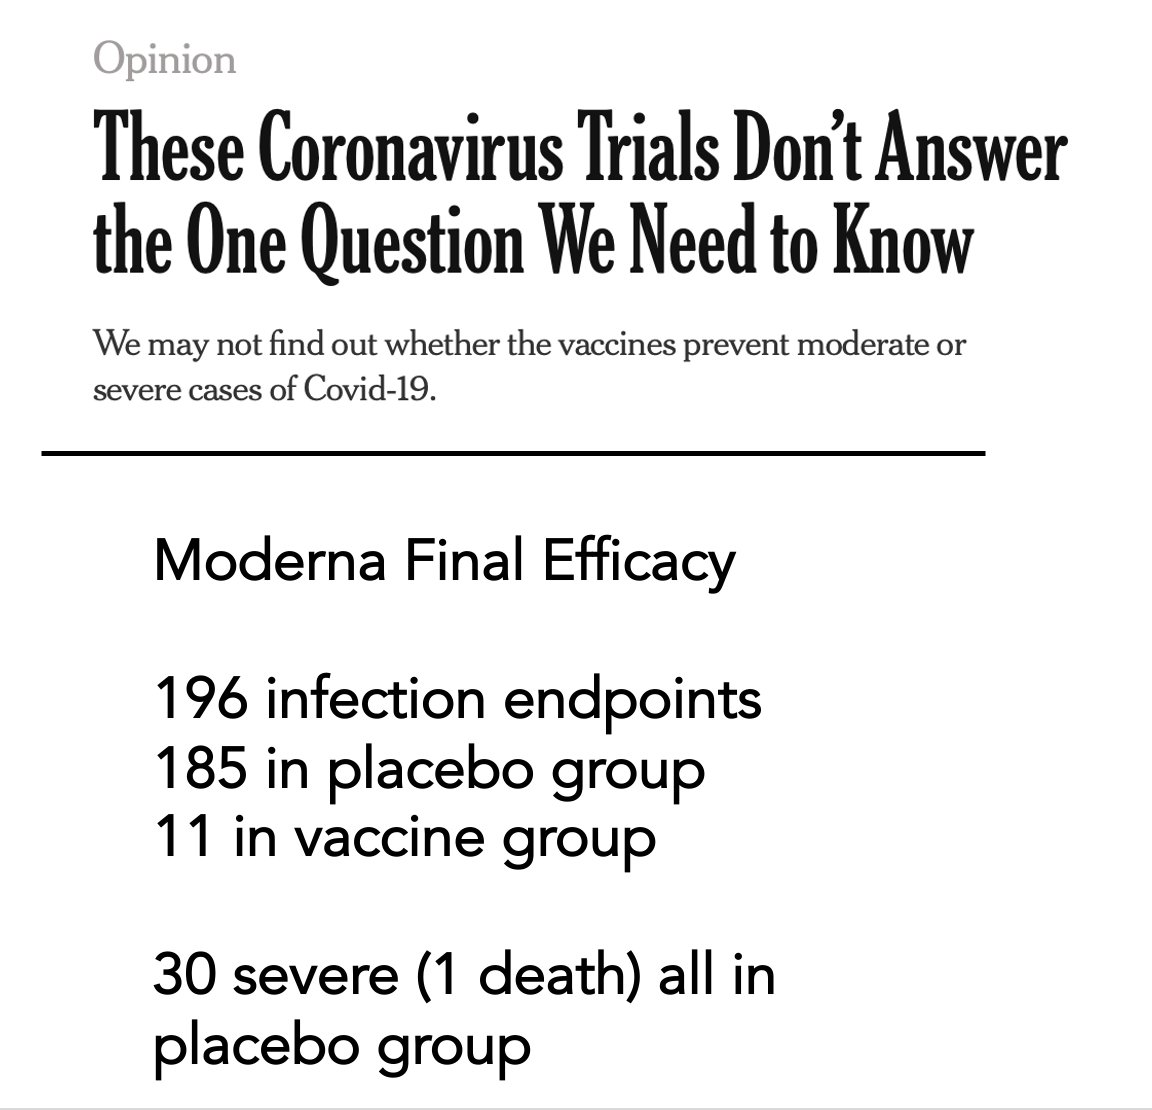 Back in September, we wrote about the need to show severe #COVID19 cases were prevented by a vaccine nytimes.com/2020/09/22/opi… Today we know that. Of @moderna_tx final efficacy all 30 severe cases were in the placebo group.